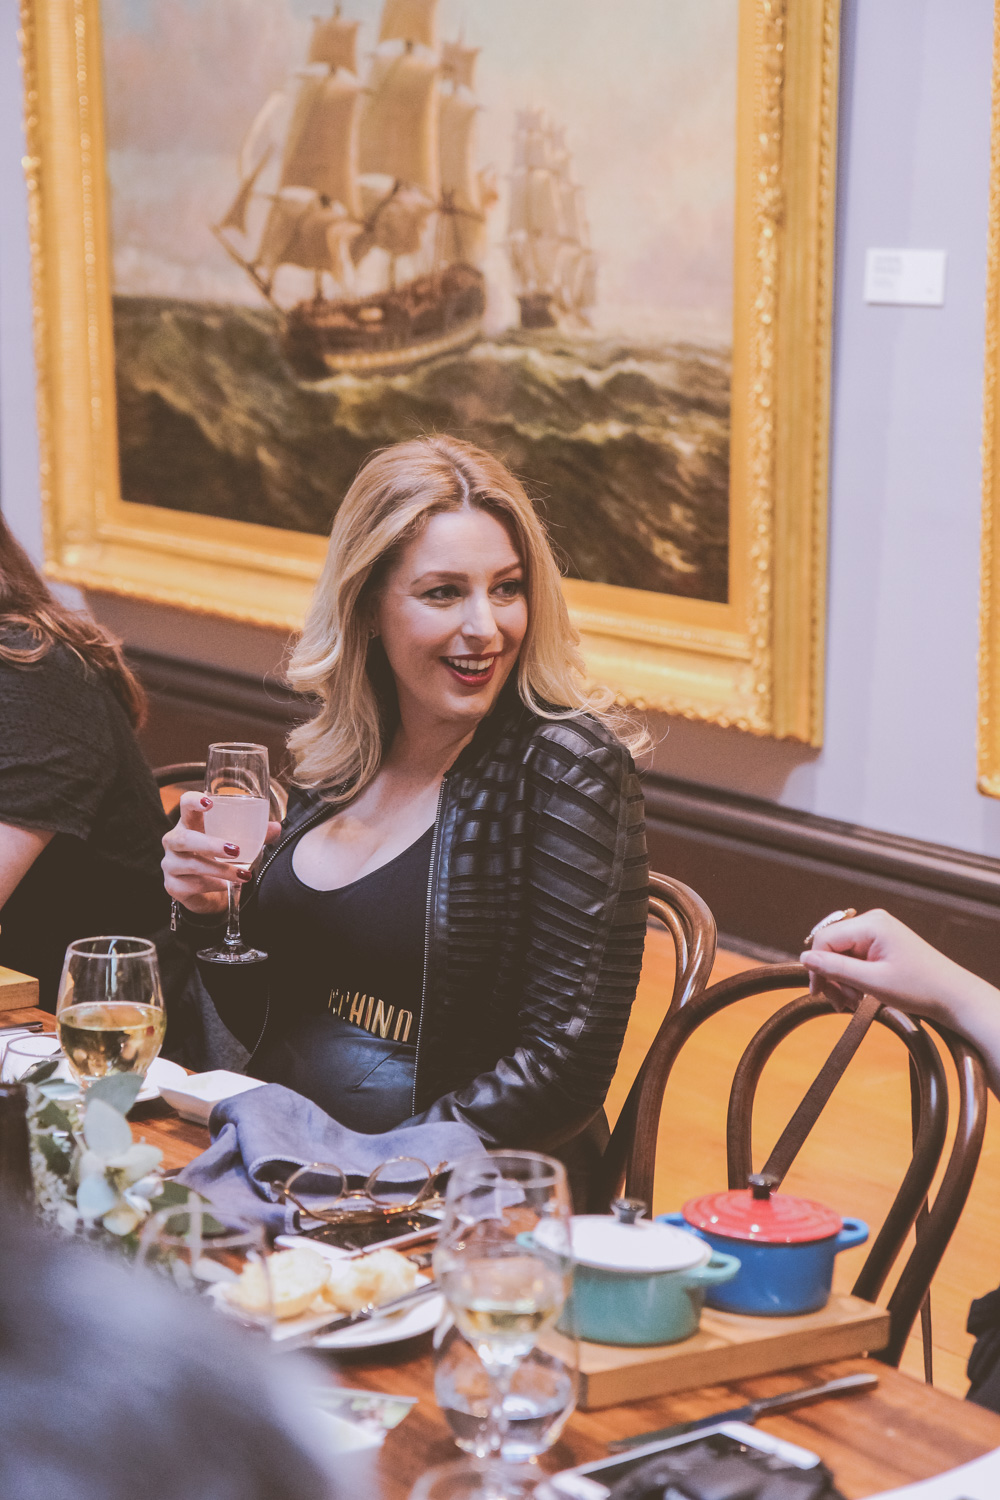 The Goldfields Girl at Restaurant Ballarat at the Art Gallery of Ballarat presented by Broadsheet Melbourne